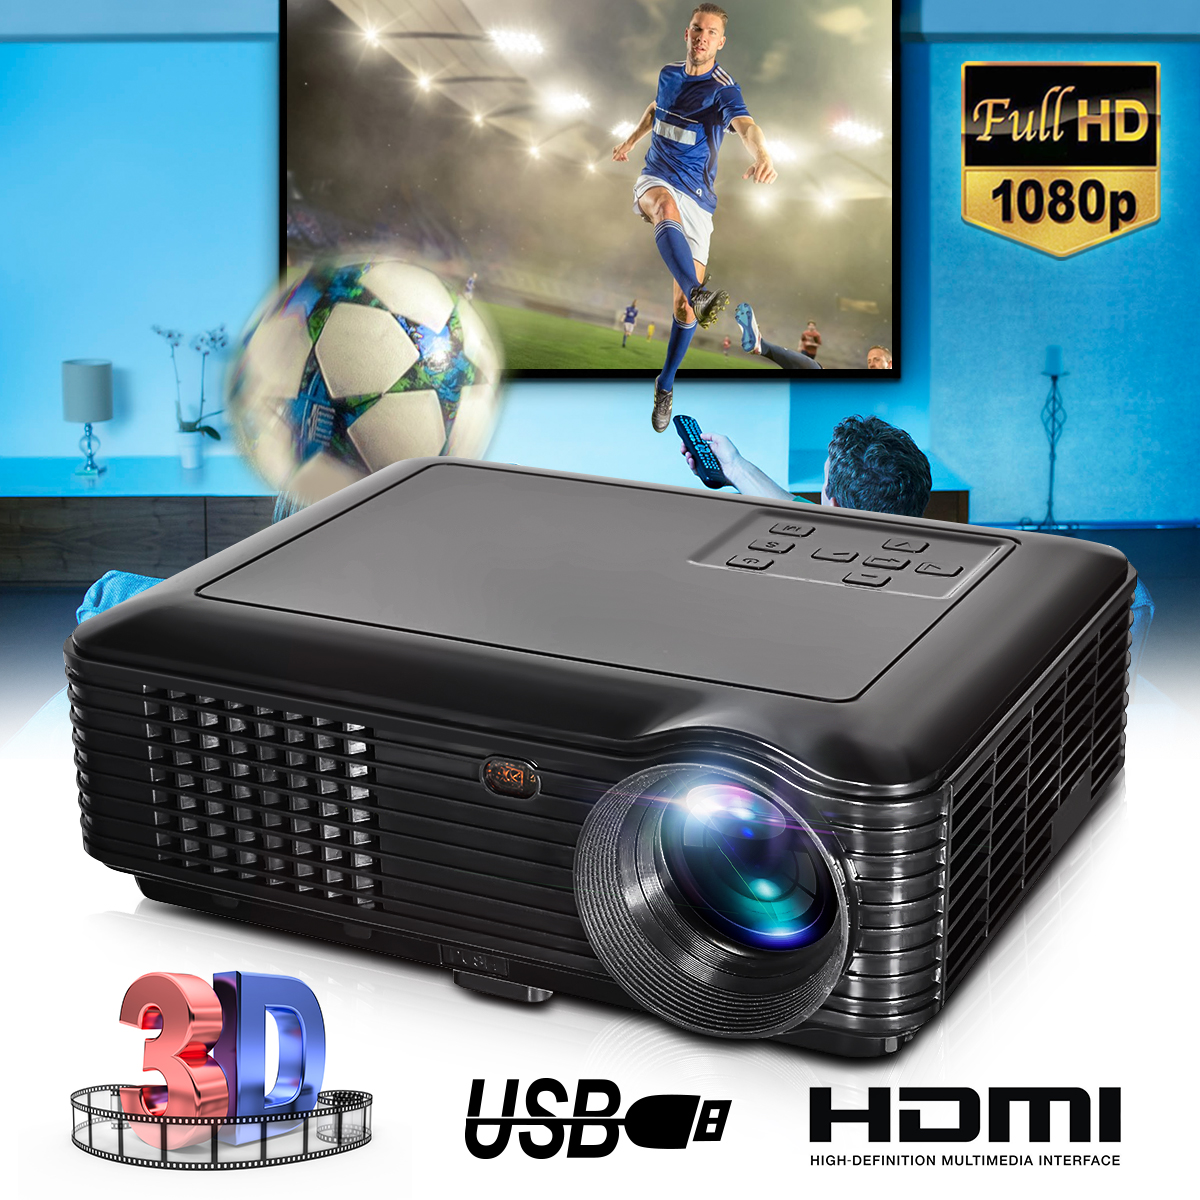 White 3500Lm LED Portable Projector 800x480 Resolution Home Theater Support 1080P USB VGA SD AVWhite 3500Lm LED Portable Projector 800x480 Resolution Home Theater Support 1080P USB VGA SD AV